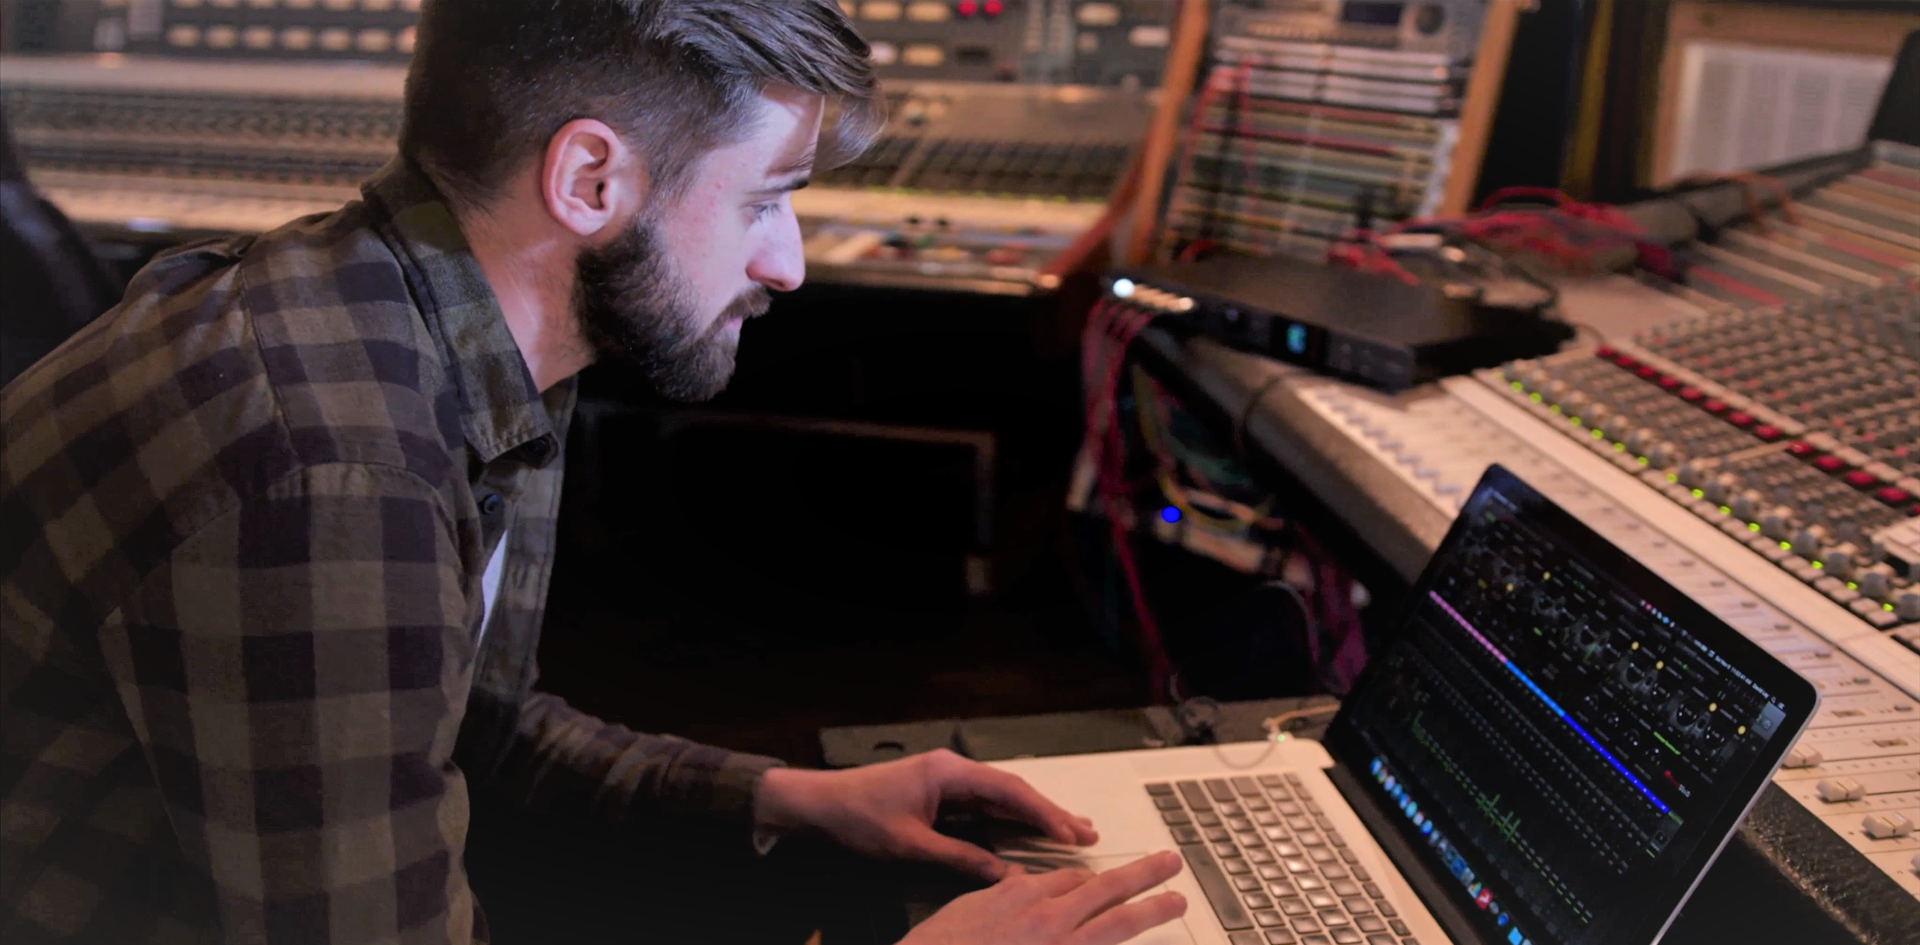 Merging the studio and live worlds with front of house engineer David Loy